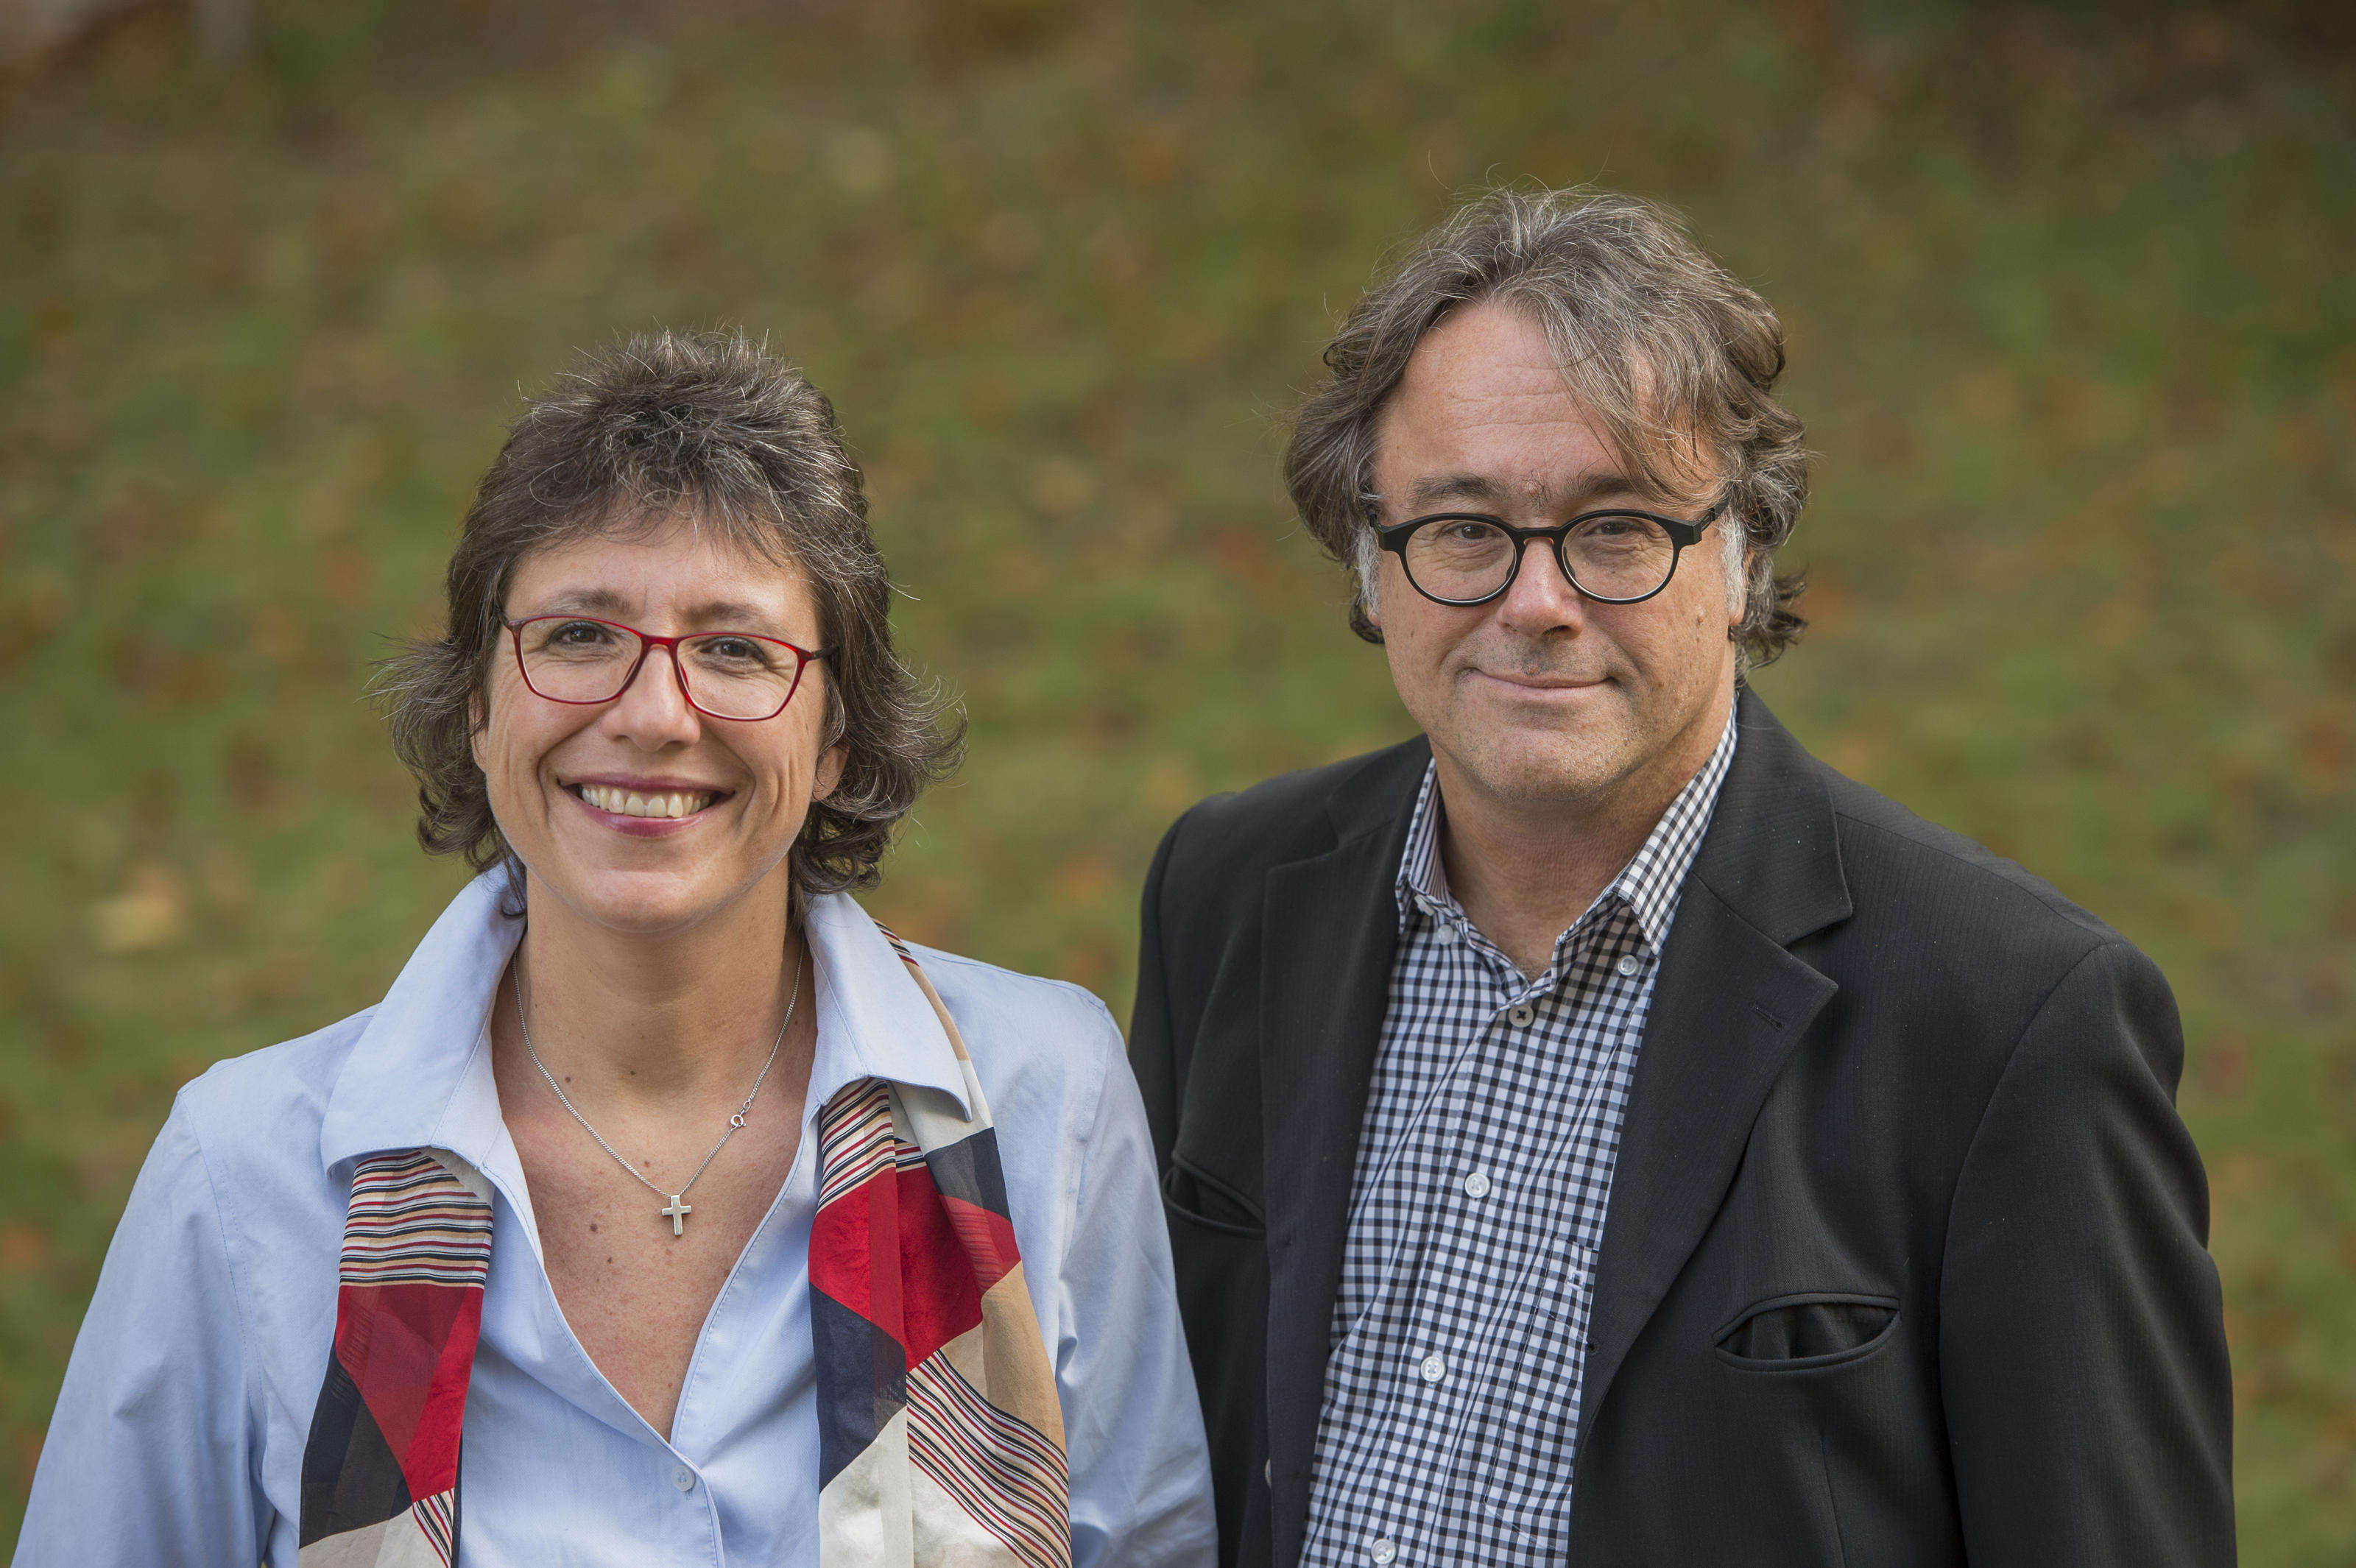 Professors Tanja Börzel and Michael Zürn, spokespersons for the SCRIPTS cluster of excellence.